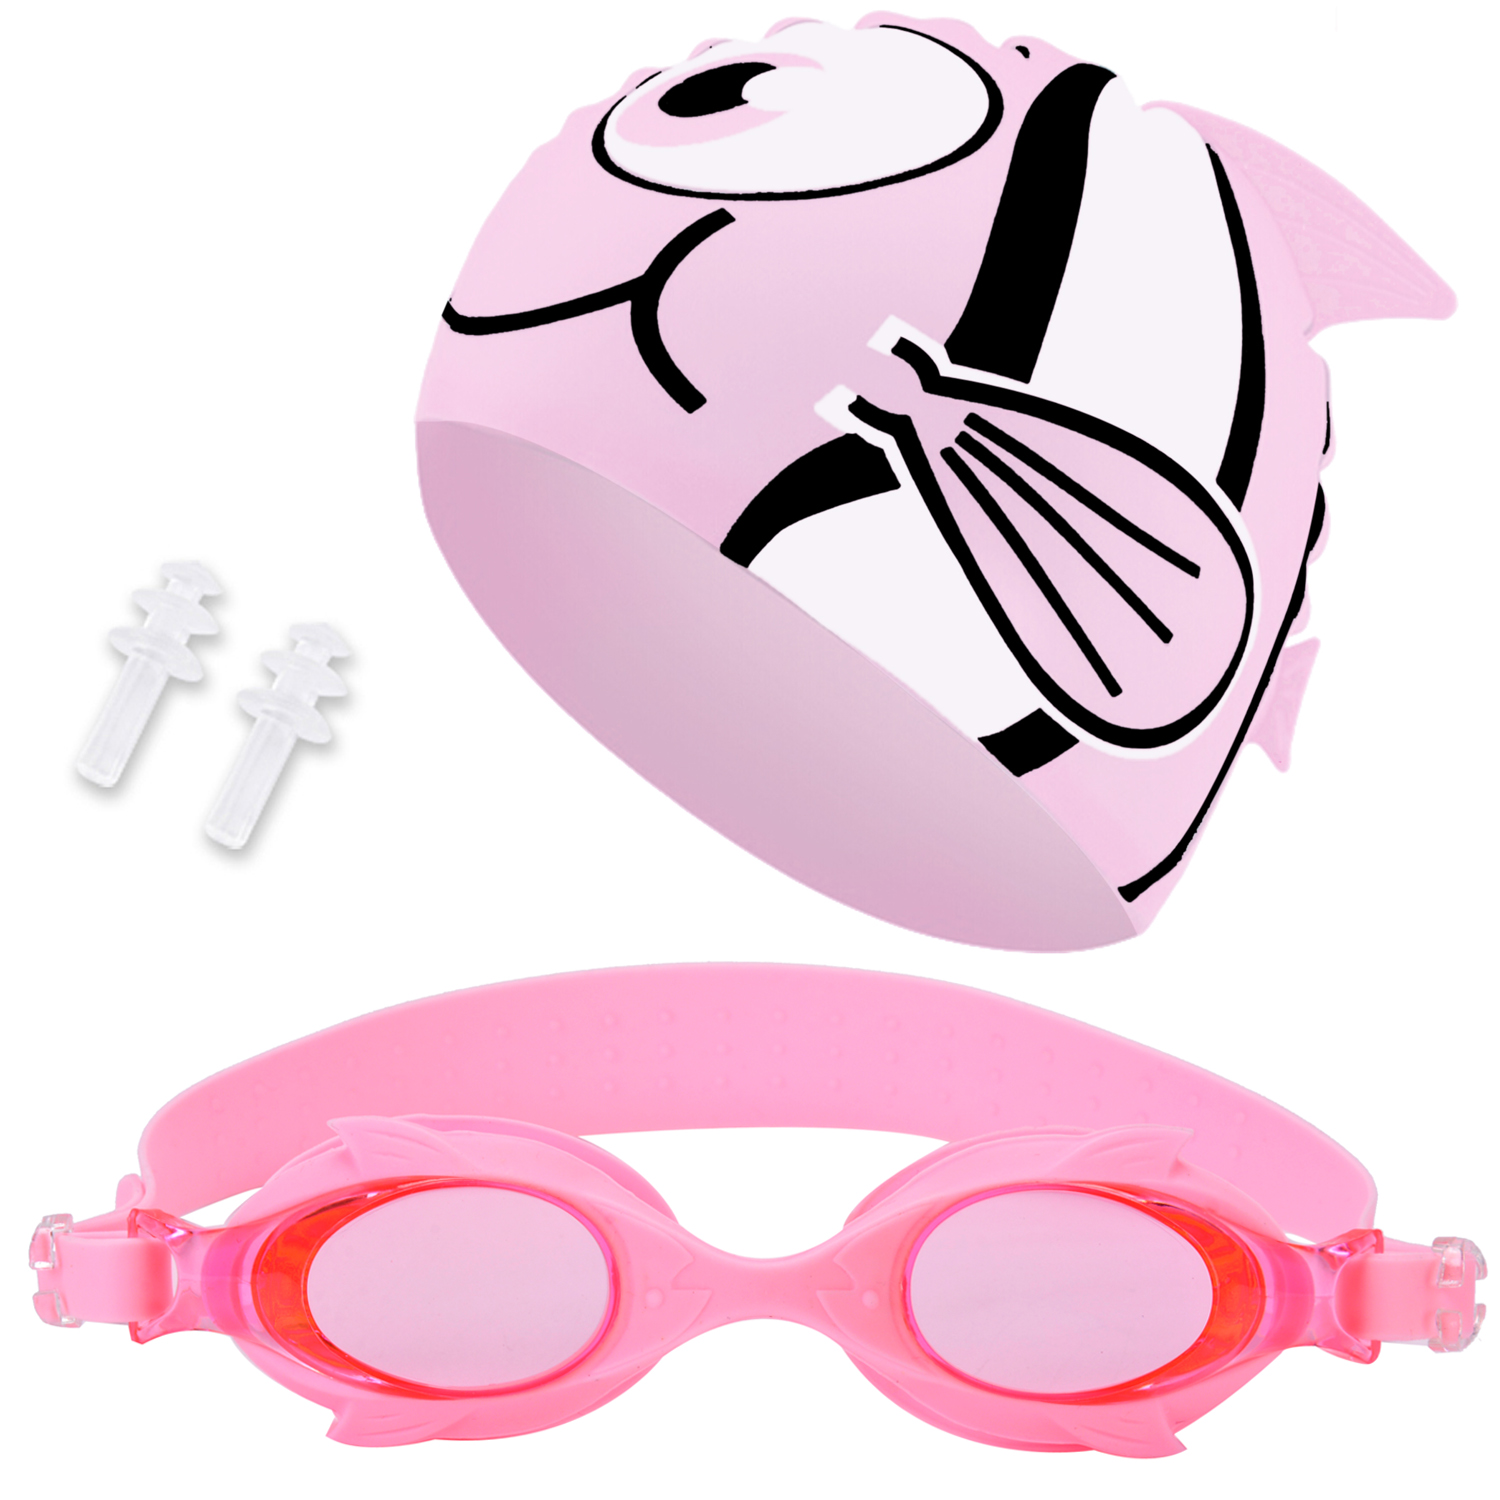 Kids Swim Cap Swim Goggles Set, Aniwon Anti Fog Swim Goggles Waterproof Silicone Swimming Cap with Ear Plugs for Boys... by Outgeek